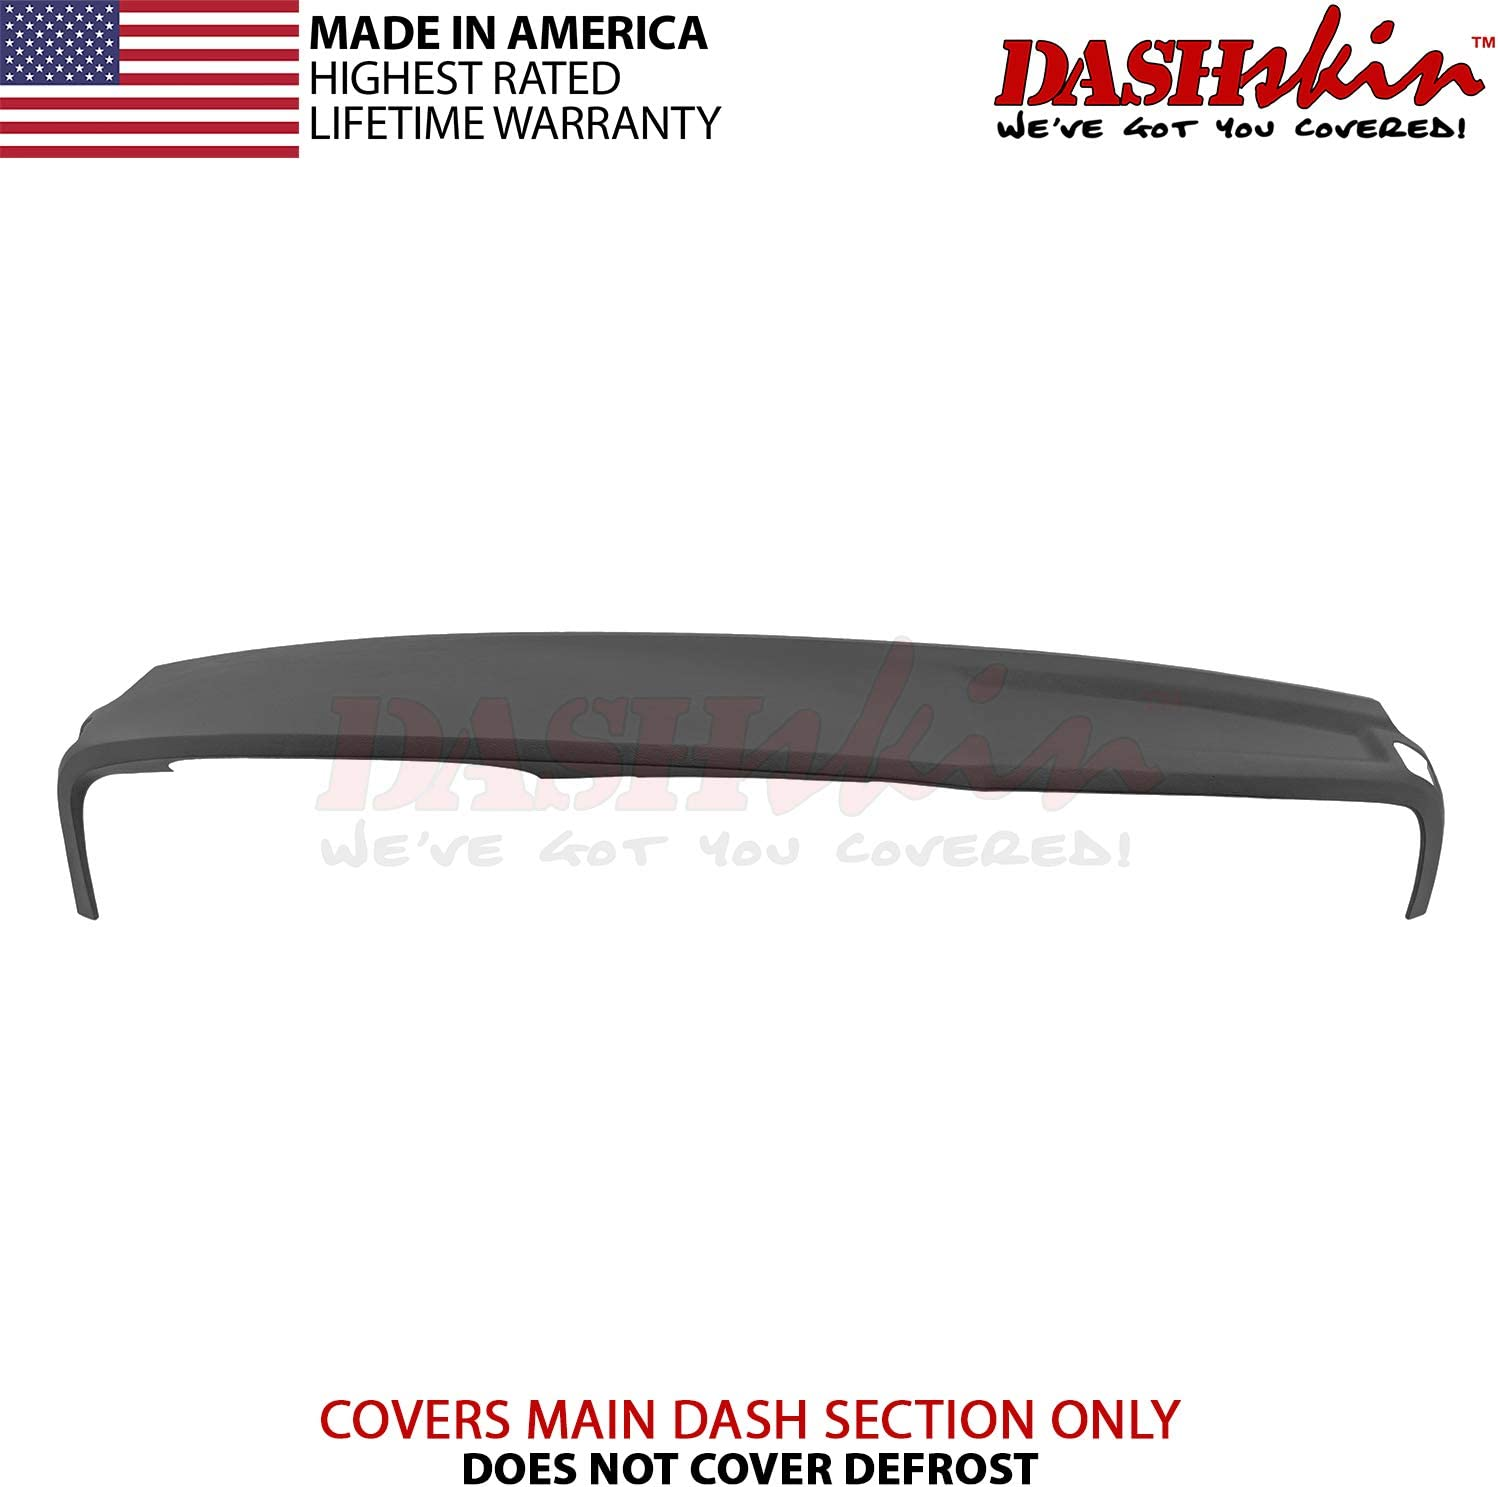 DashSkin Molded Main Dash Cover Compatible with 02-05 Dodge Ram in Dark Slate Grey (USA Made)